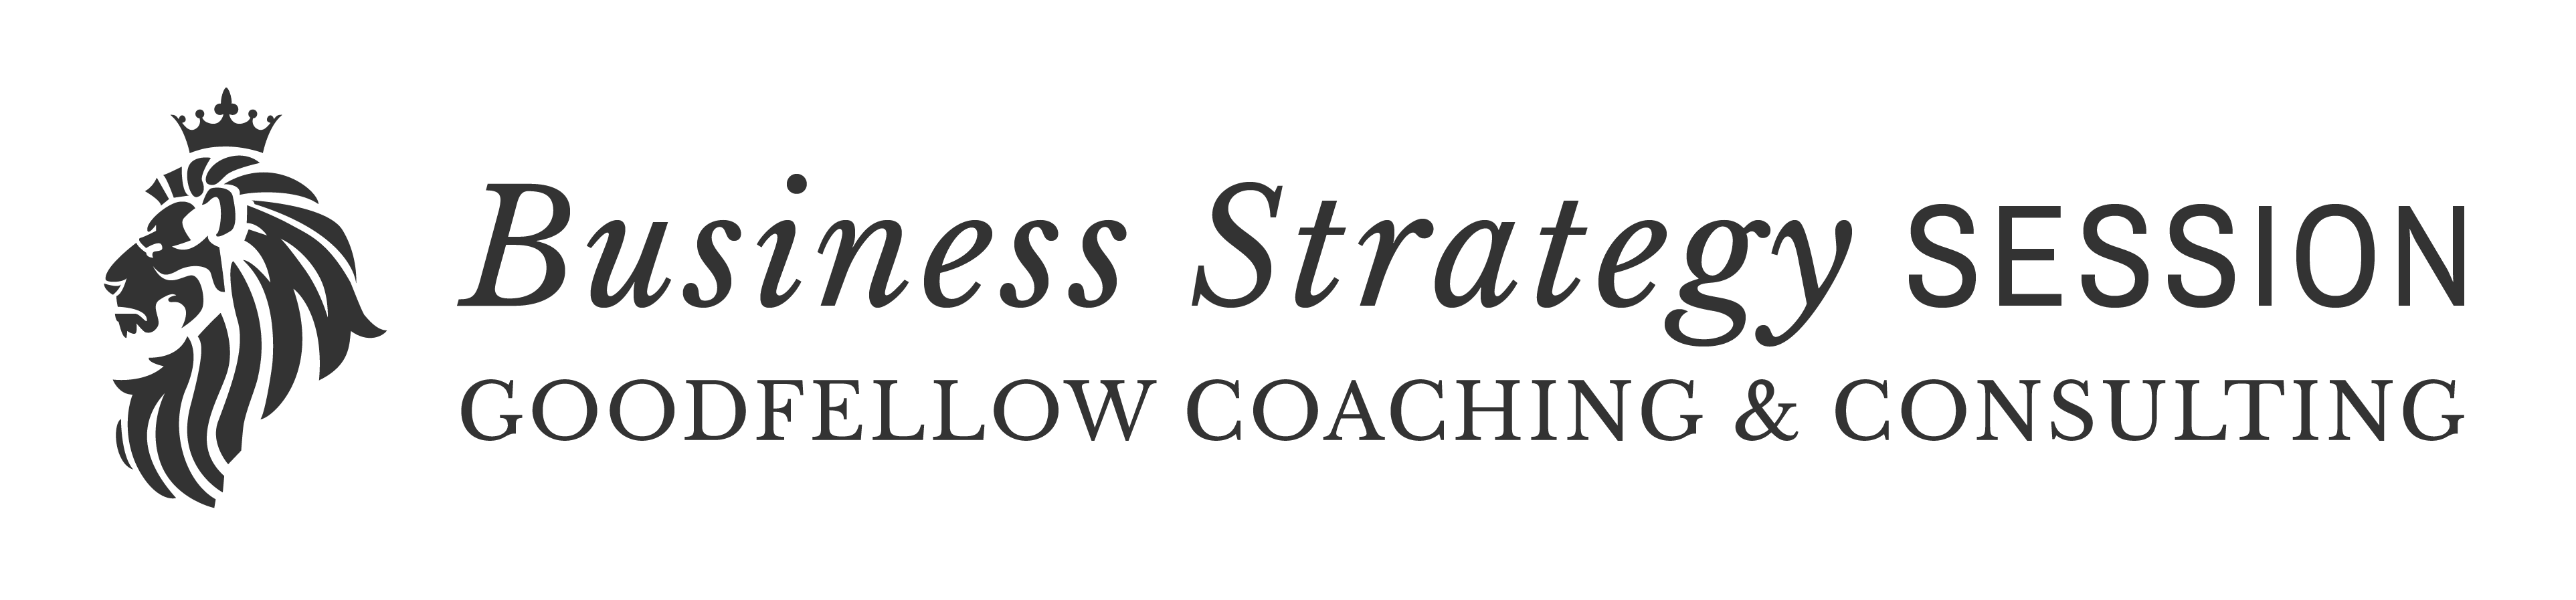 Registrations For Business Strategy Session Las Vegas Has Not Opened Yet  And Will Open Soon.